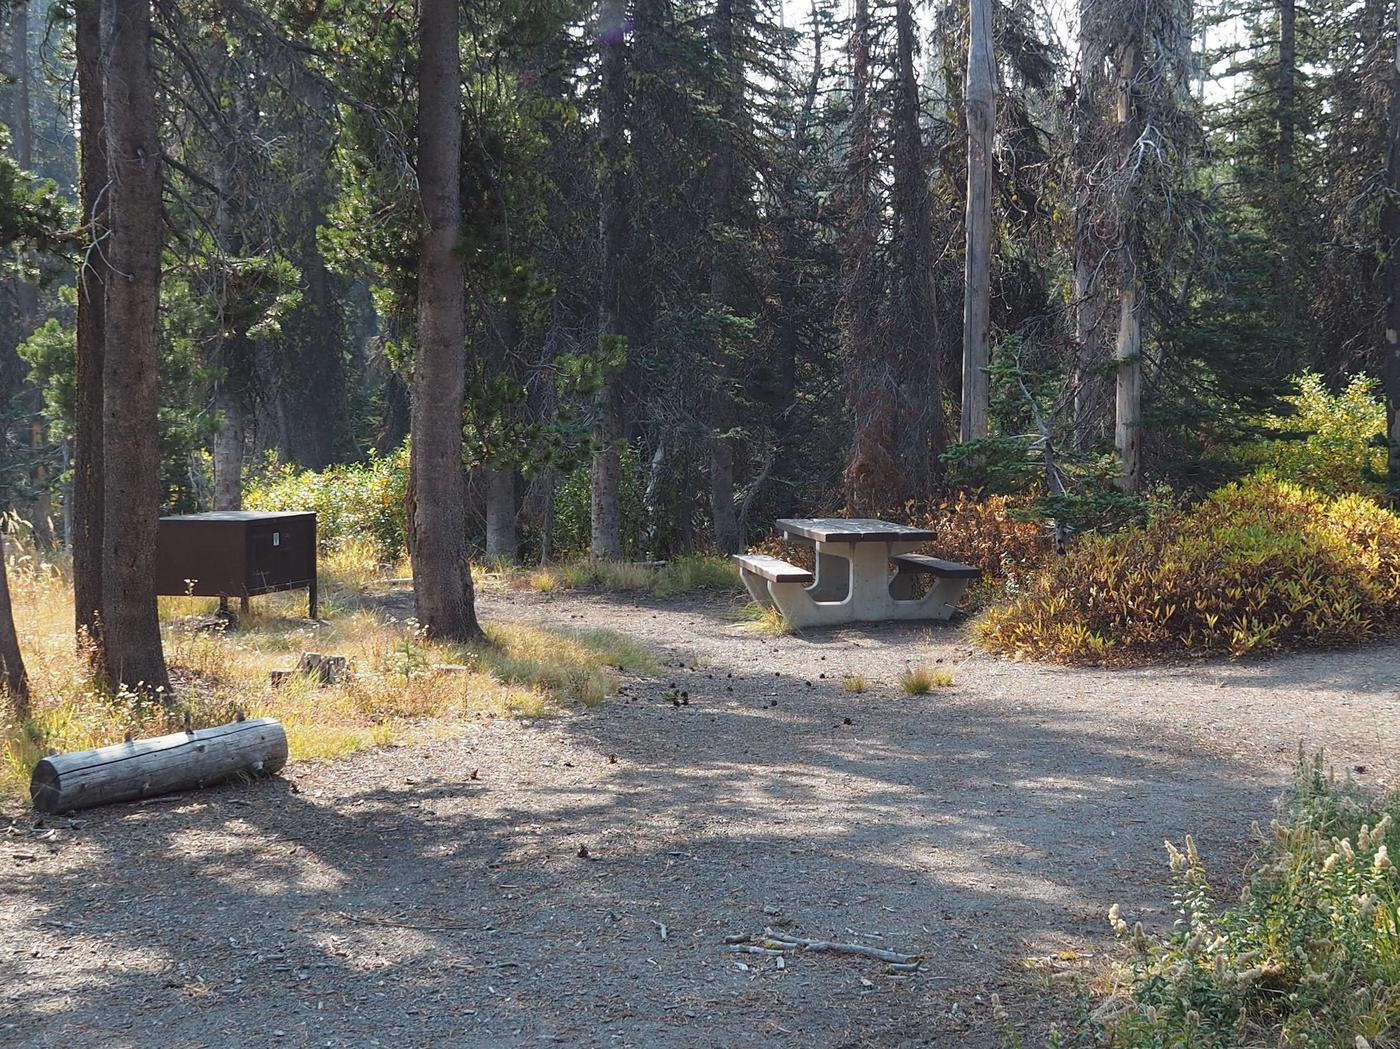 Lost Creek Campsite #4A campsite nestled next to Lost Creek and the Greyback Trail.